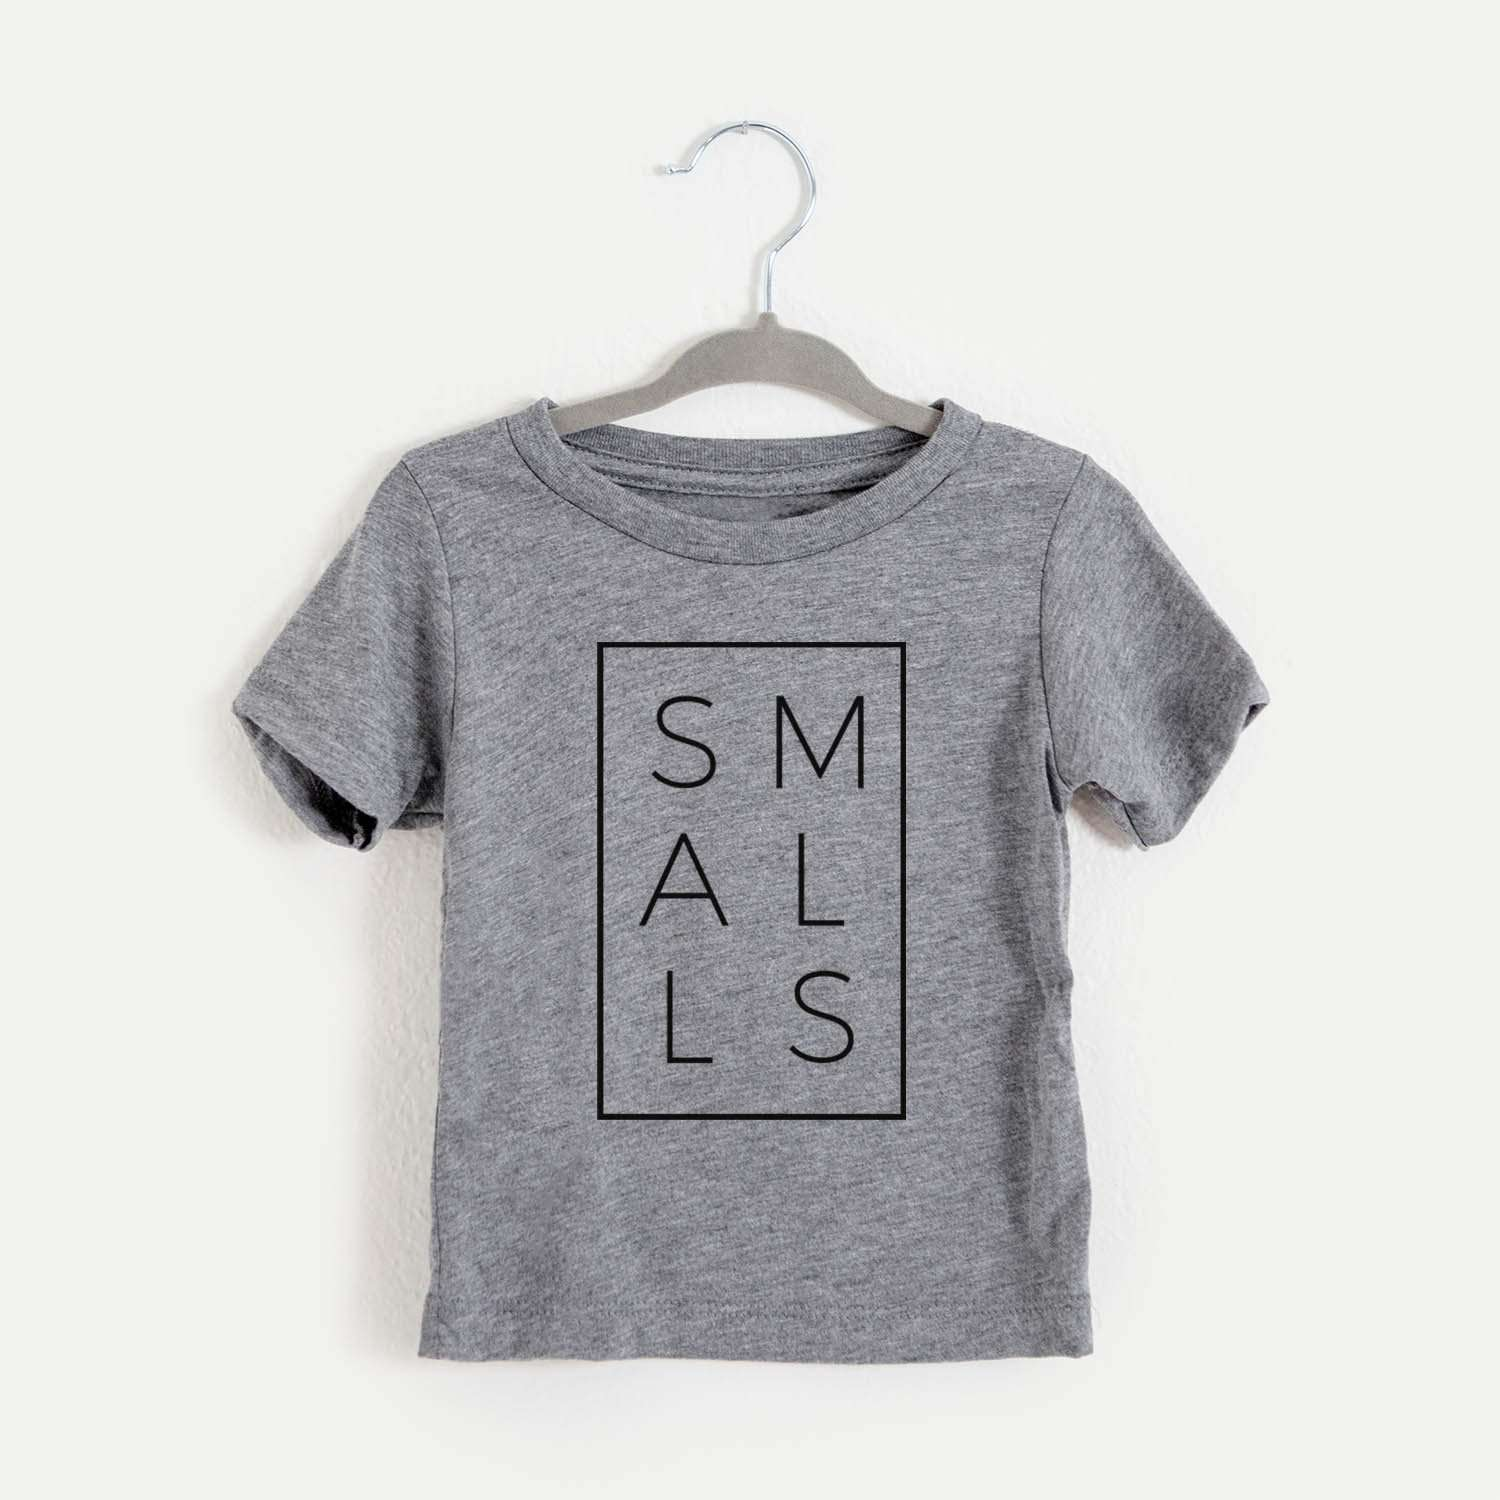 Smalls Boxed - Kids/Youth/Toddler Shirt